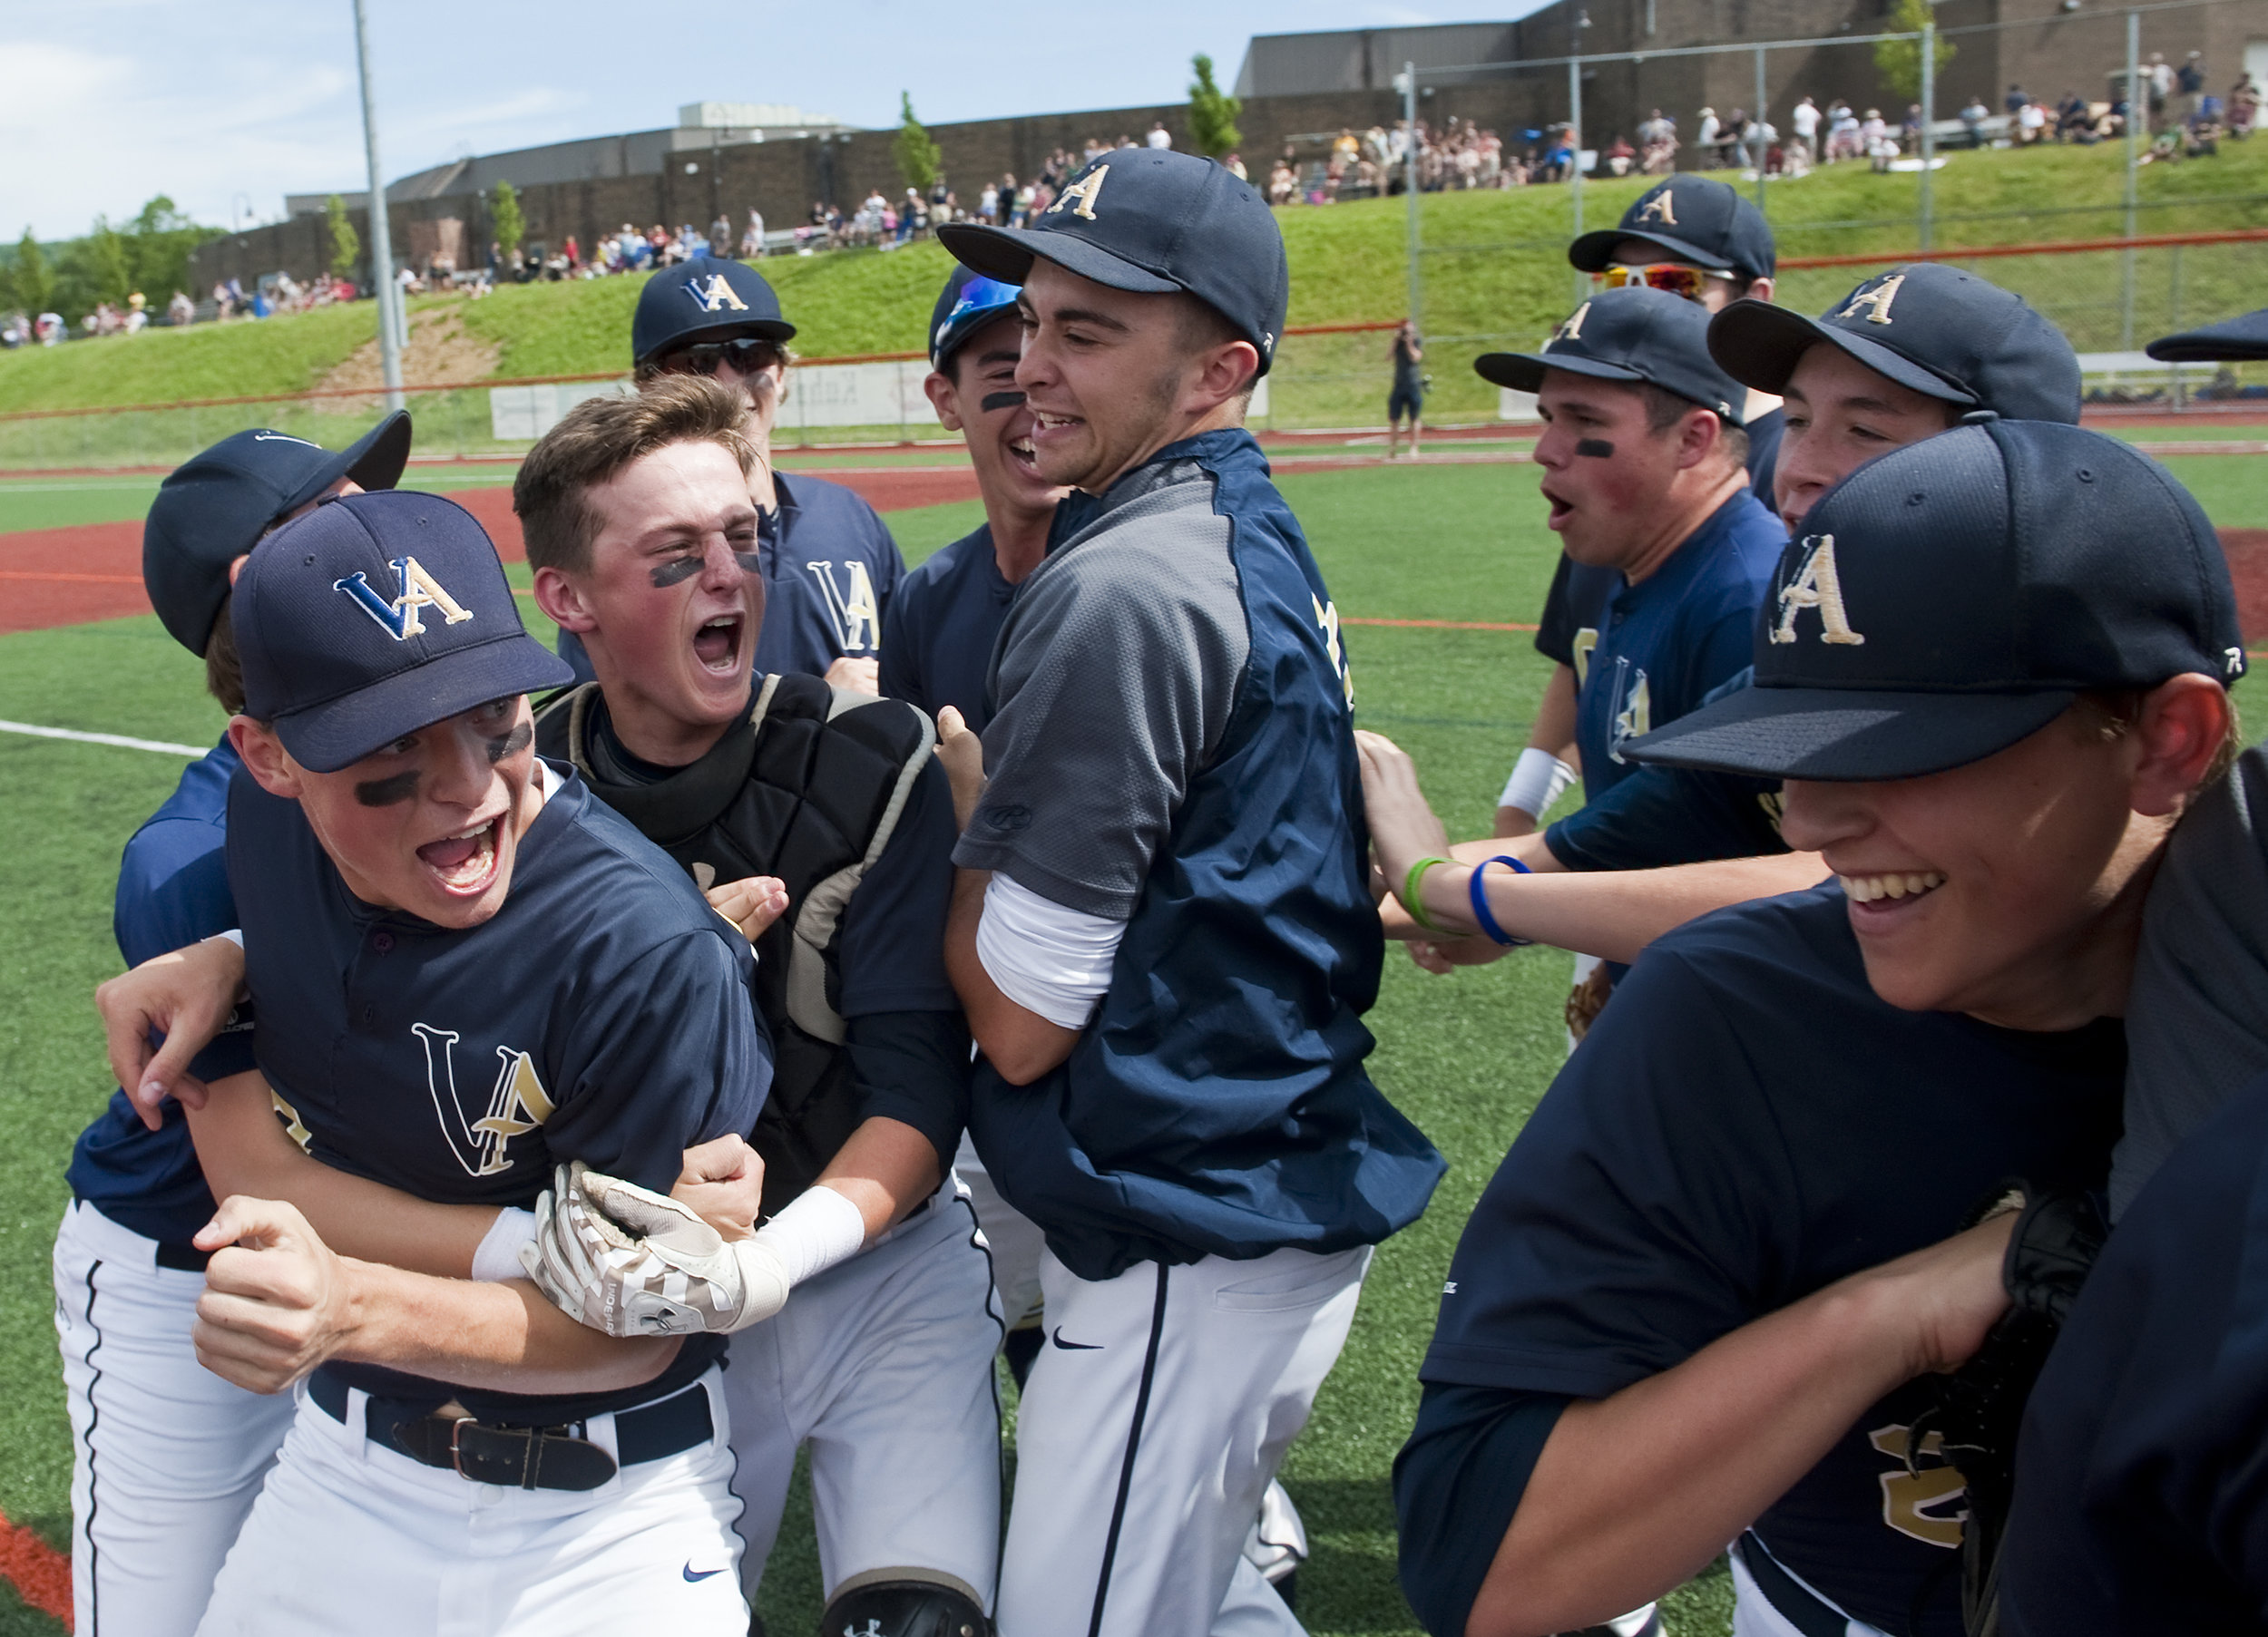 Vincentian Academy celebrates their win over Serra Catholic during a PIAA semifinal baseball game on Monday, June 13, 2016 at Greater Latrobe High School. Vincentian Academy won 2-0.